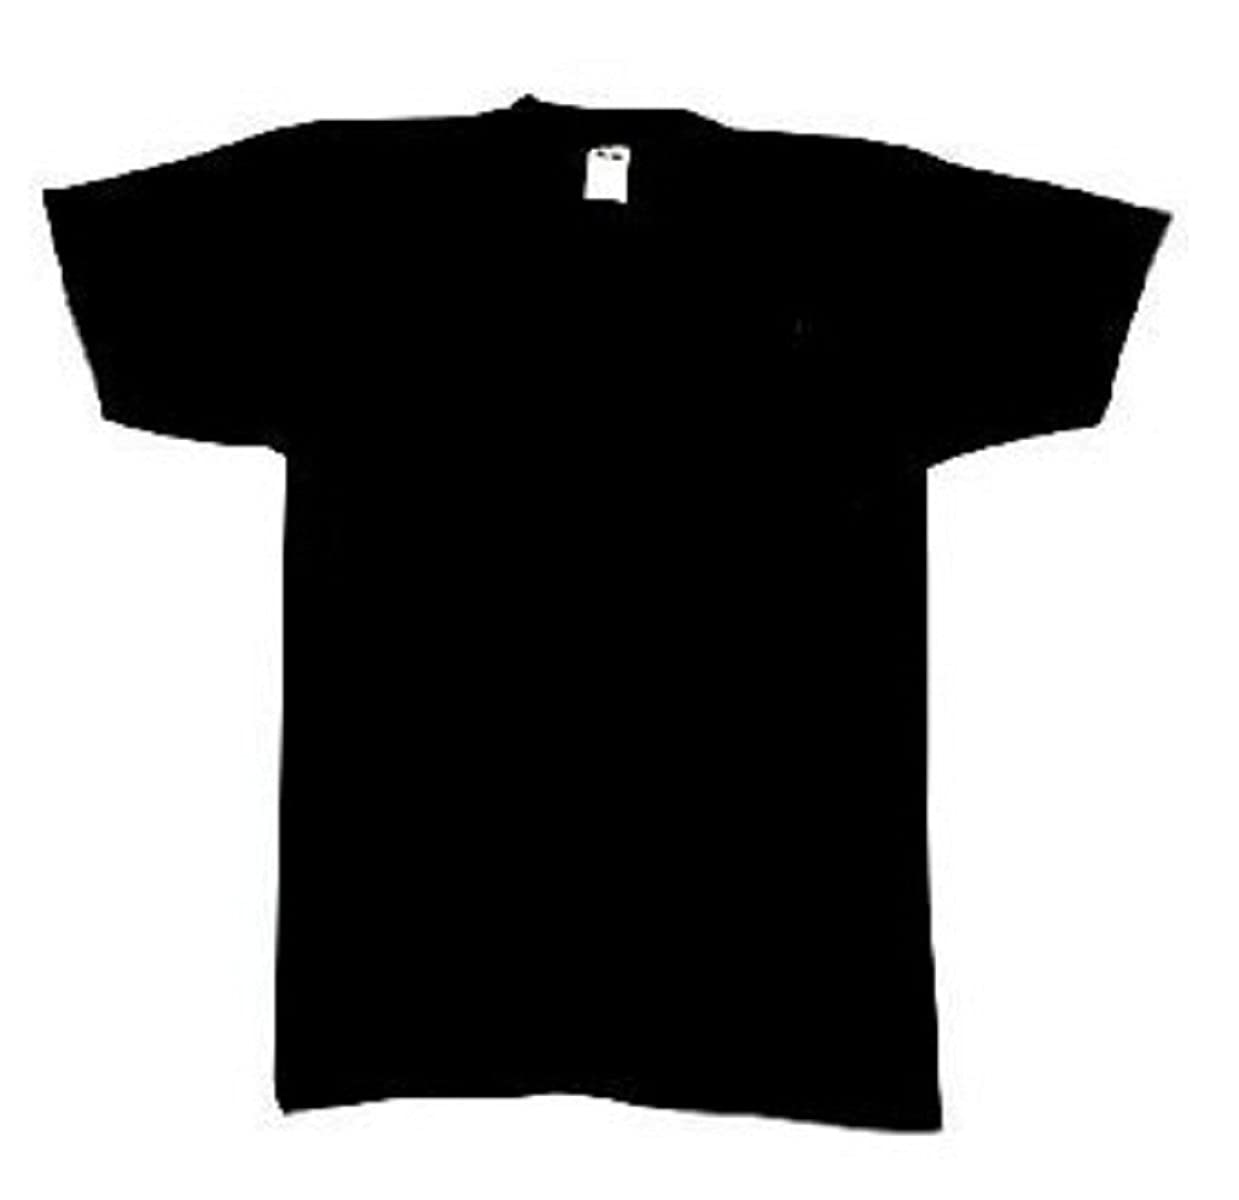 Amazon.com  6989 100% Cotton Black T-Shirt (Large)  Military Apparel Shirts   Clothing f5aaa40cb32